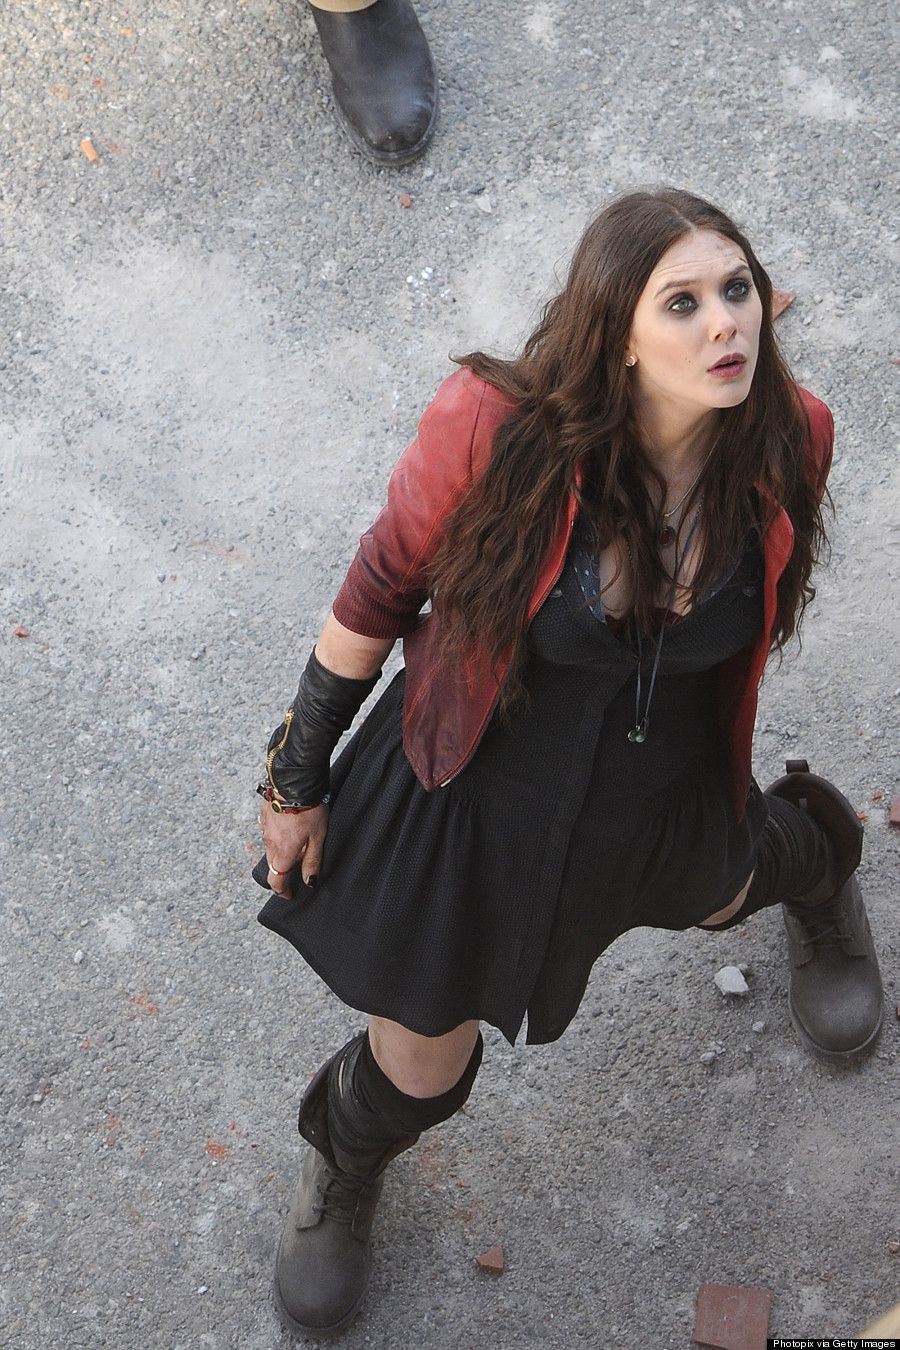 First Look At New 'Avengers 2' Characters | Elizabeth olsen ...